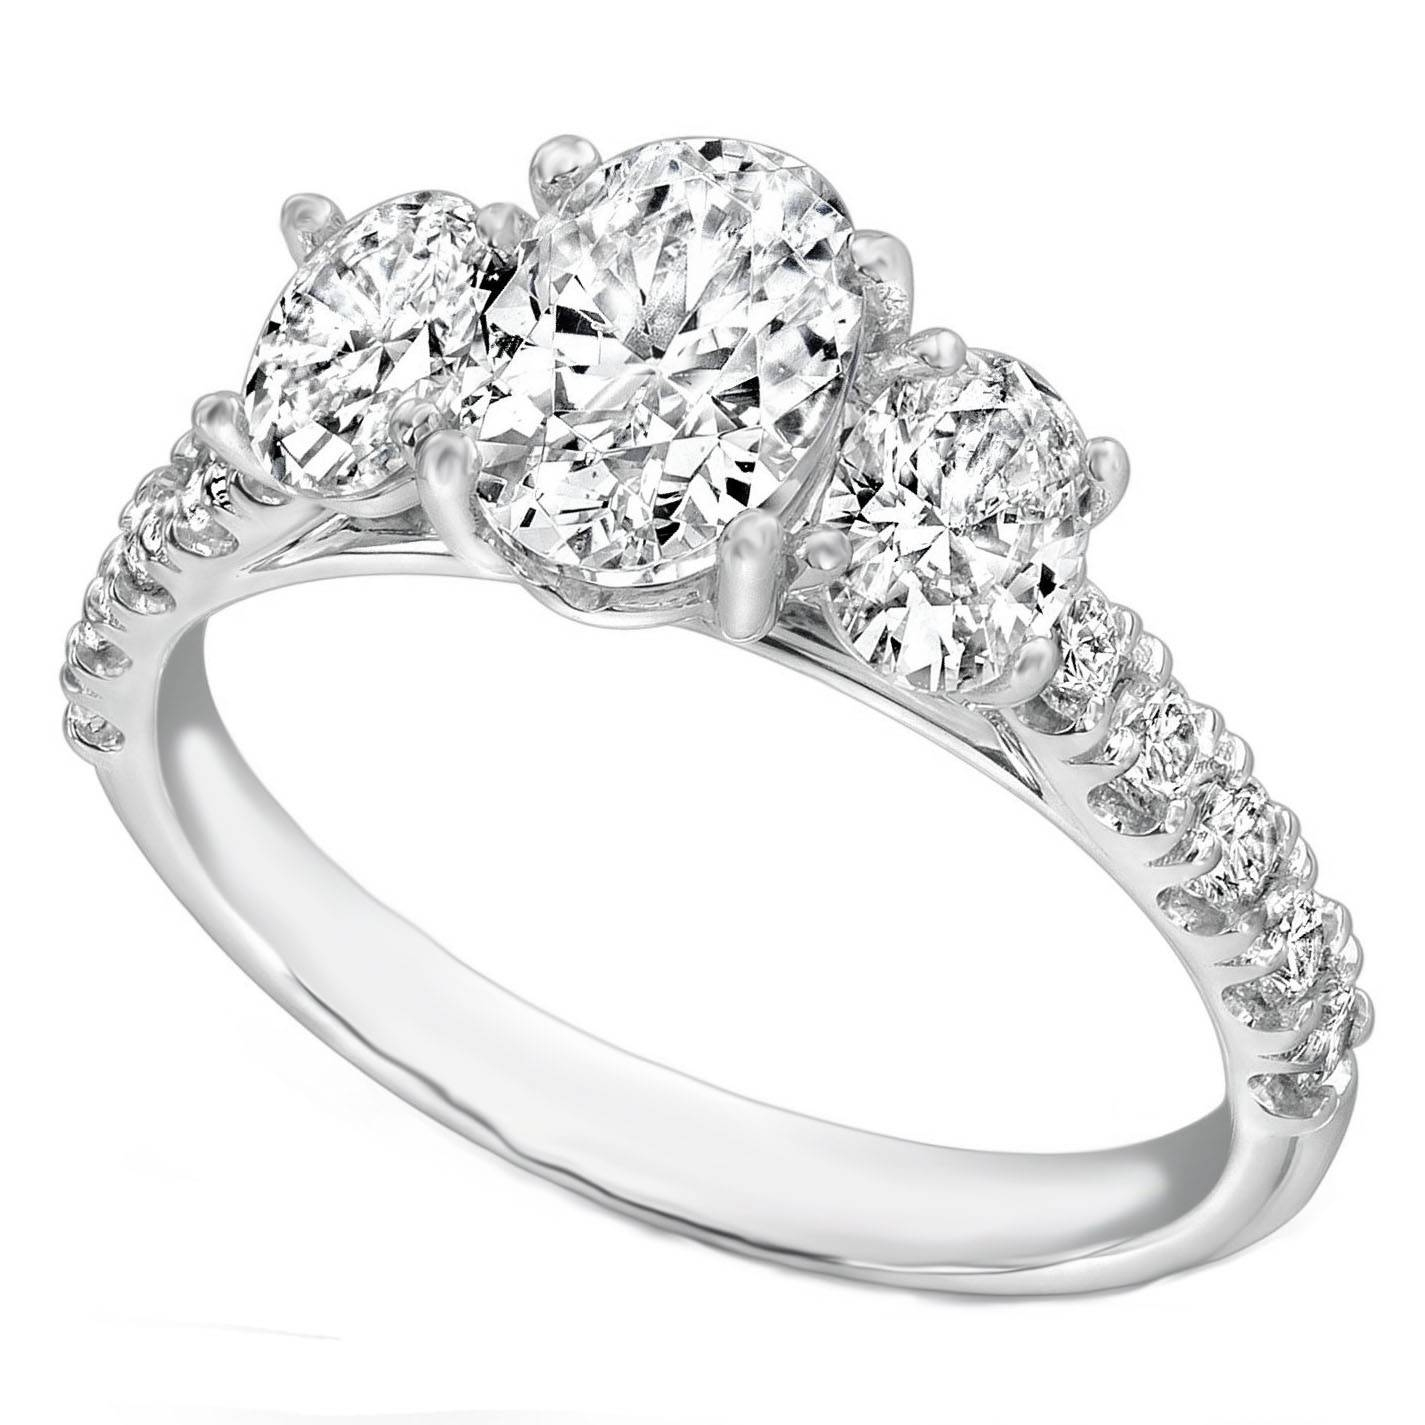 Wedding Rings : 3 Stone Engagement Rings With Side Stones 3 Stone In Three Stone Engagement Rings With Side Stones (View 11 of 15)